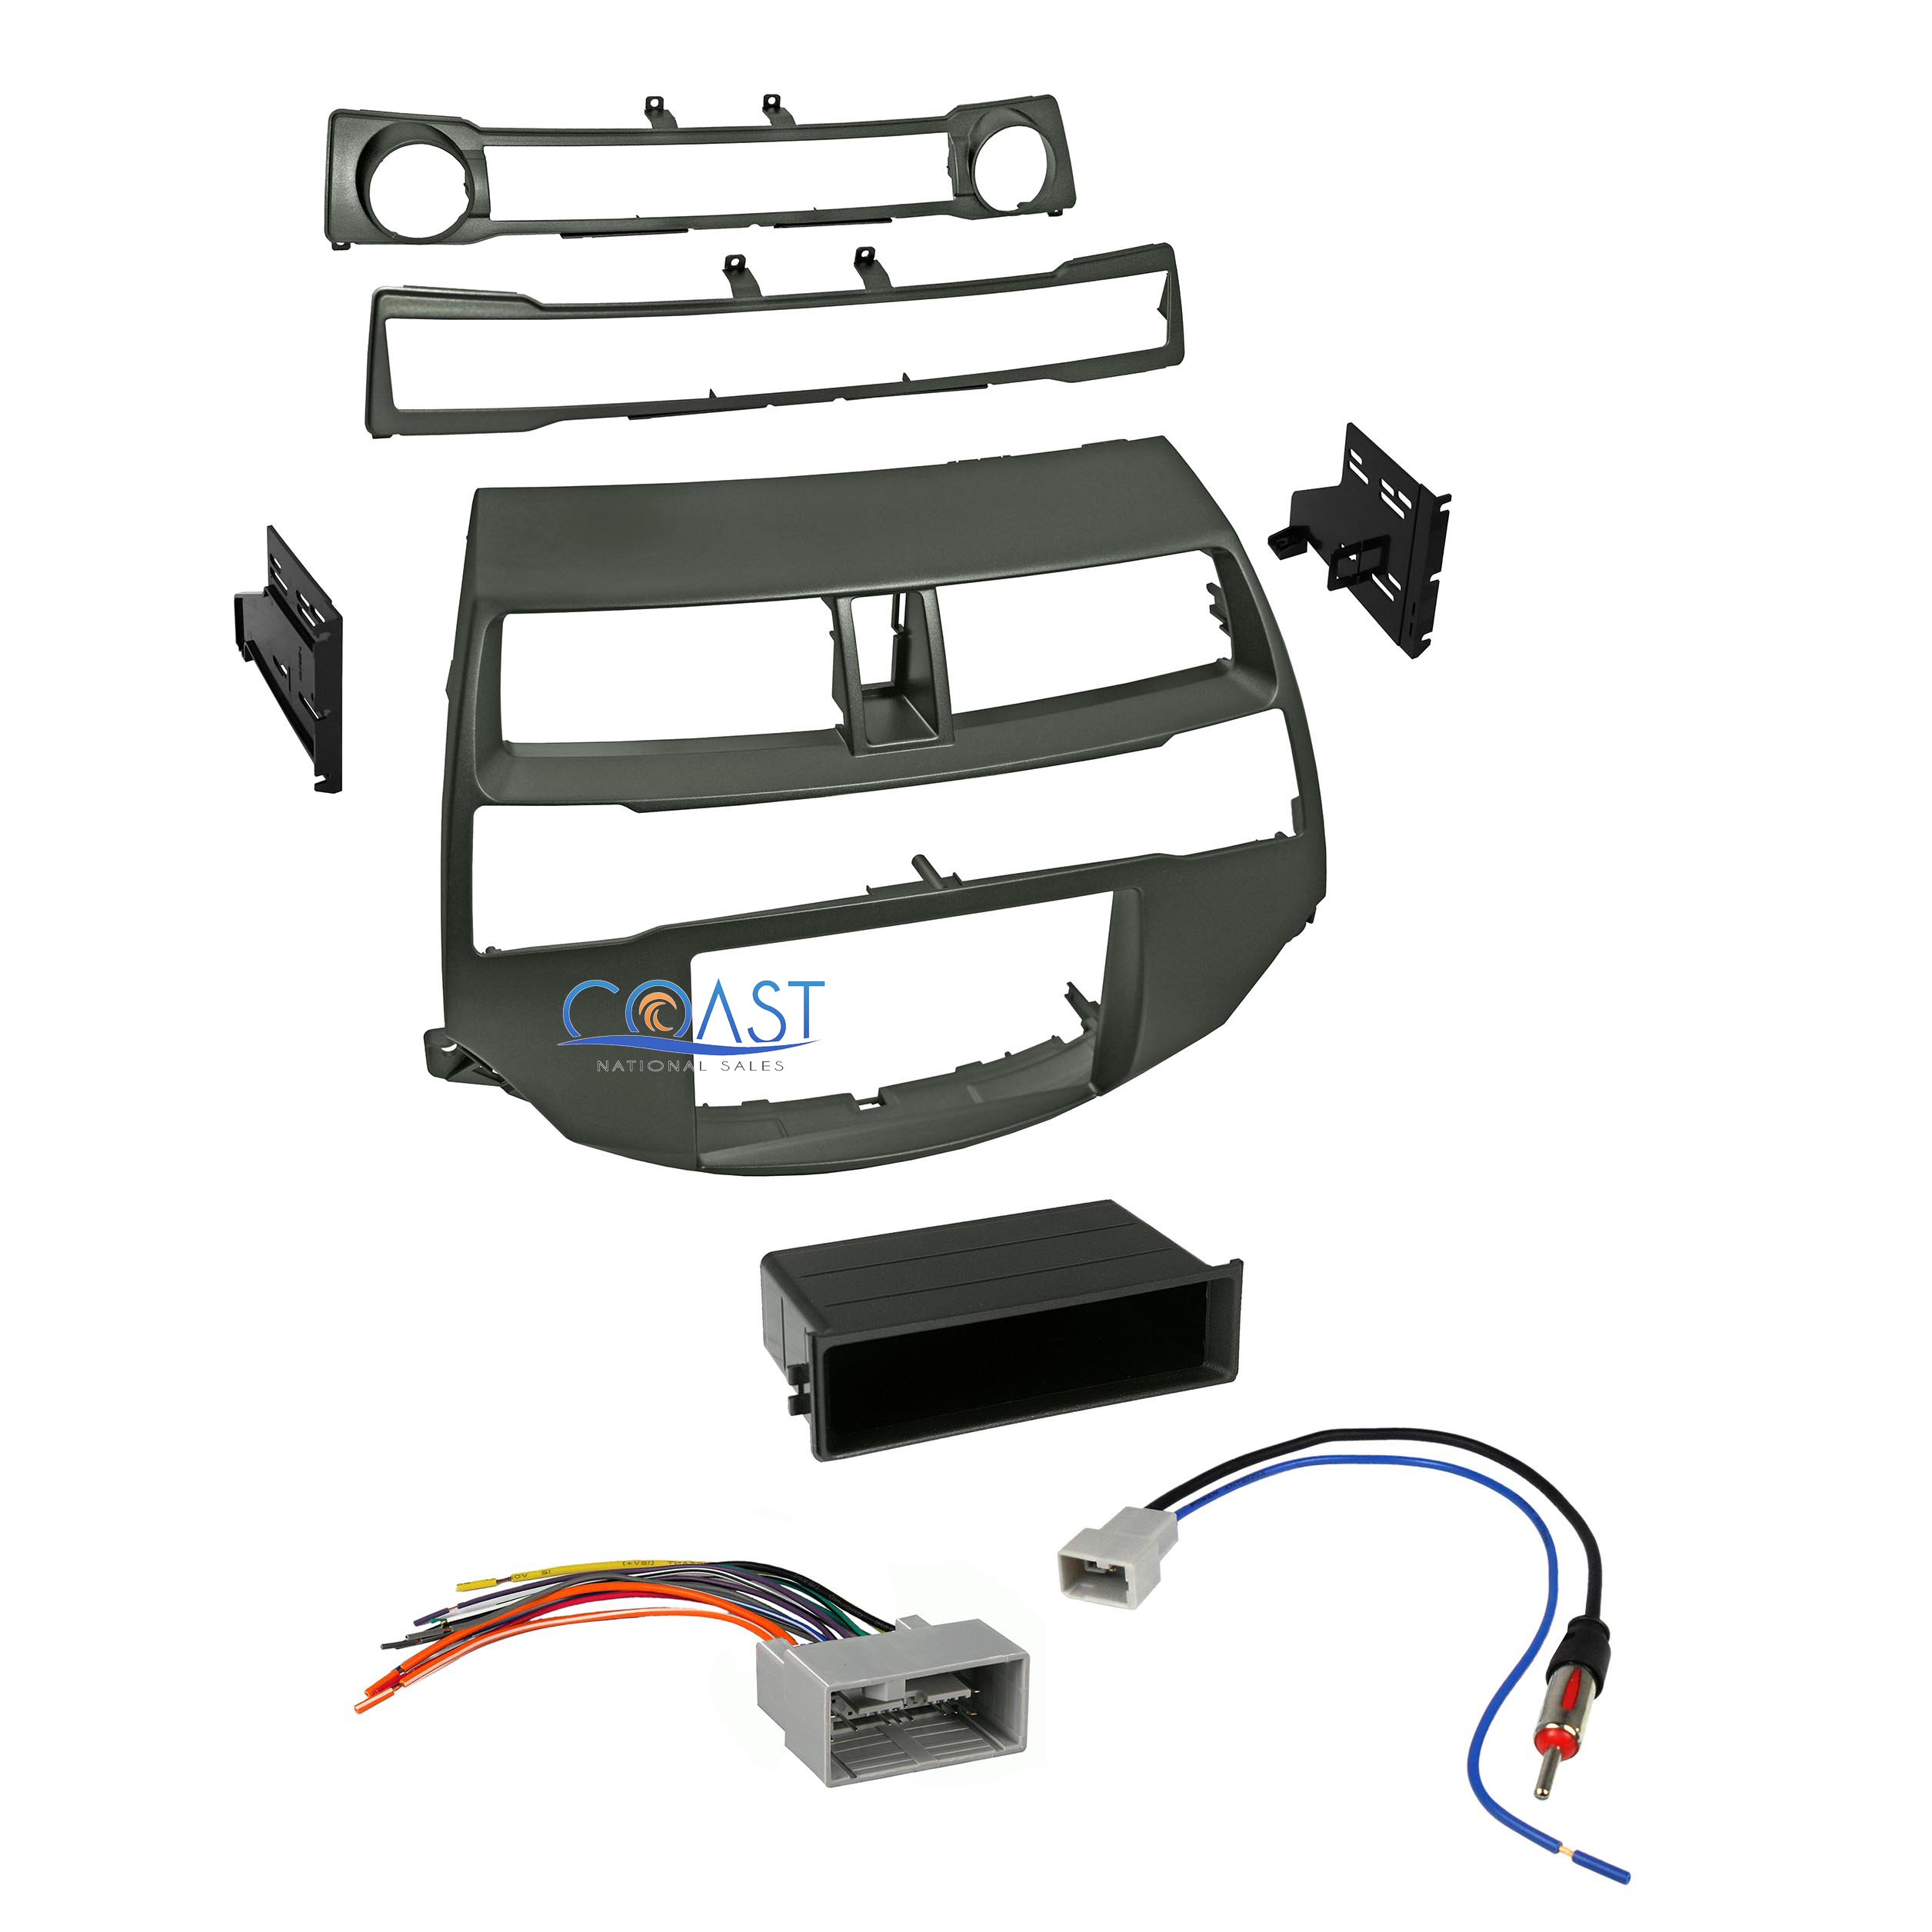 91 Honda Civic Stereo Wiring Harness : Honda eg civic radio wiring diagram